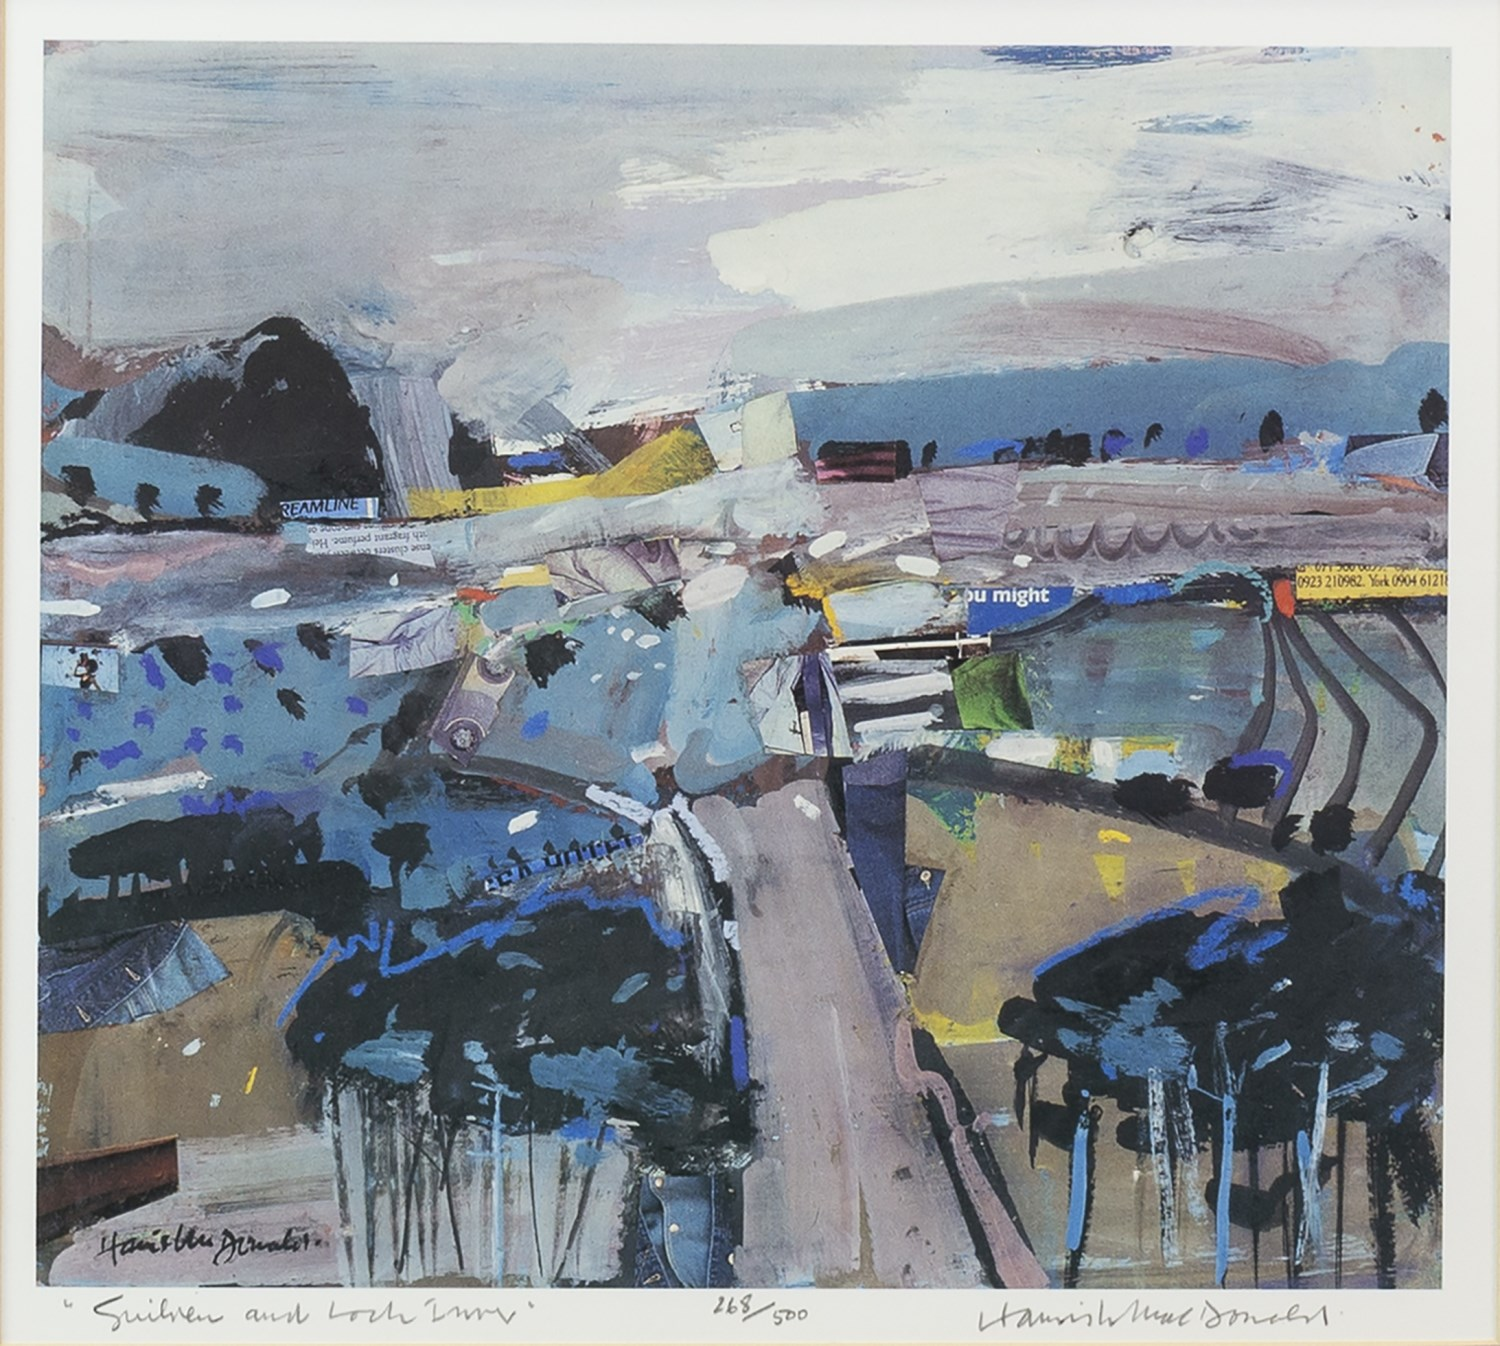 Lot 27 - SUILVEN AND LOCH INVER, A LIMITED EDITION PRINT BY HAMISH MACDONALD